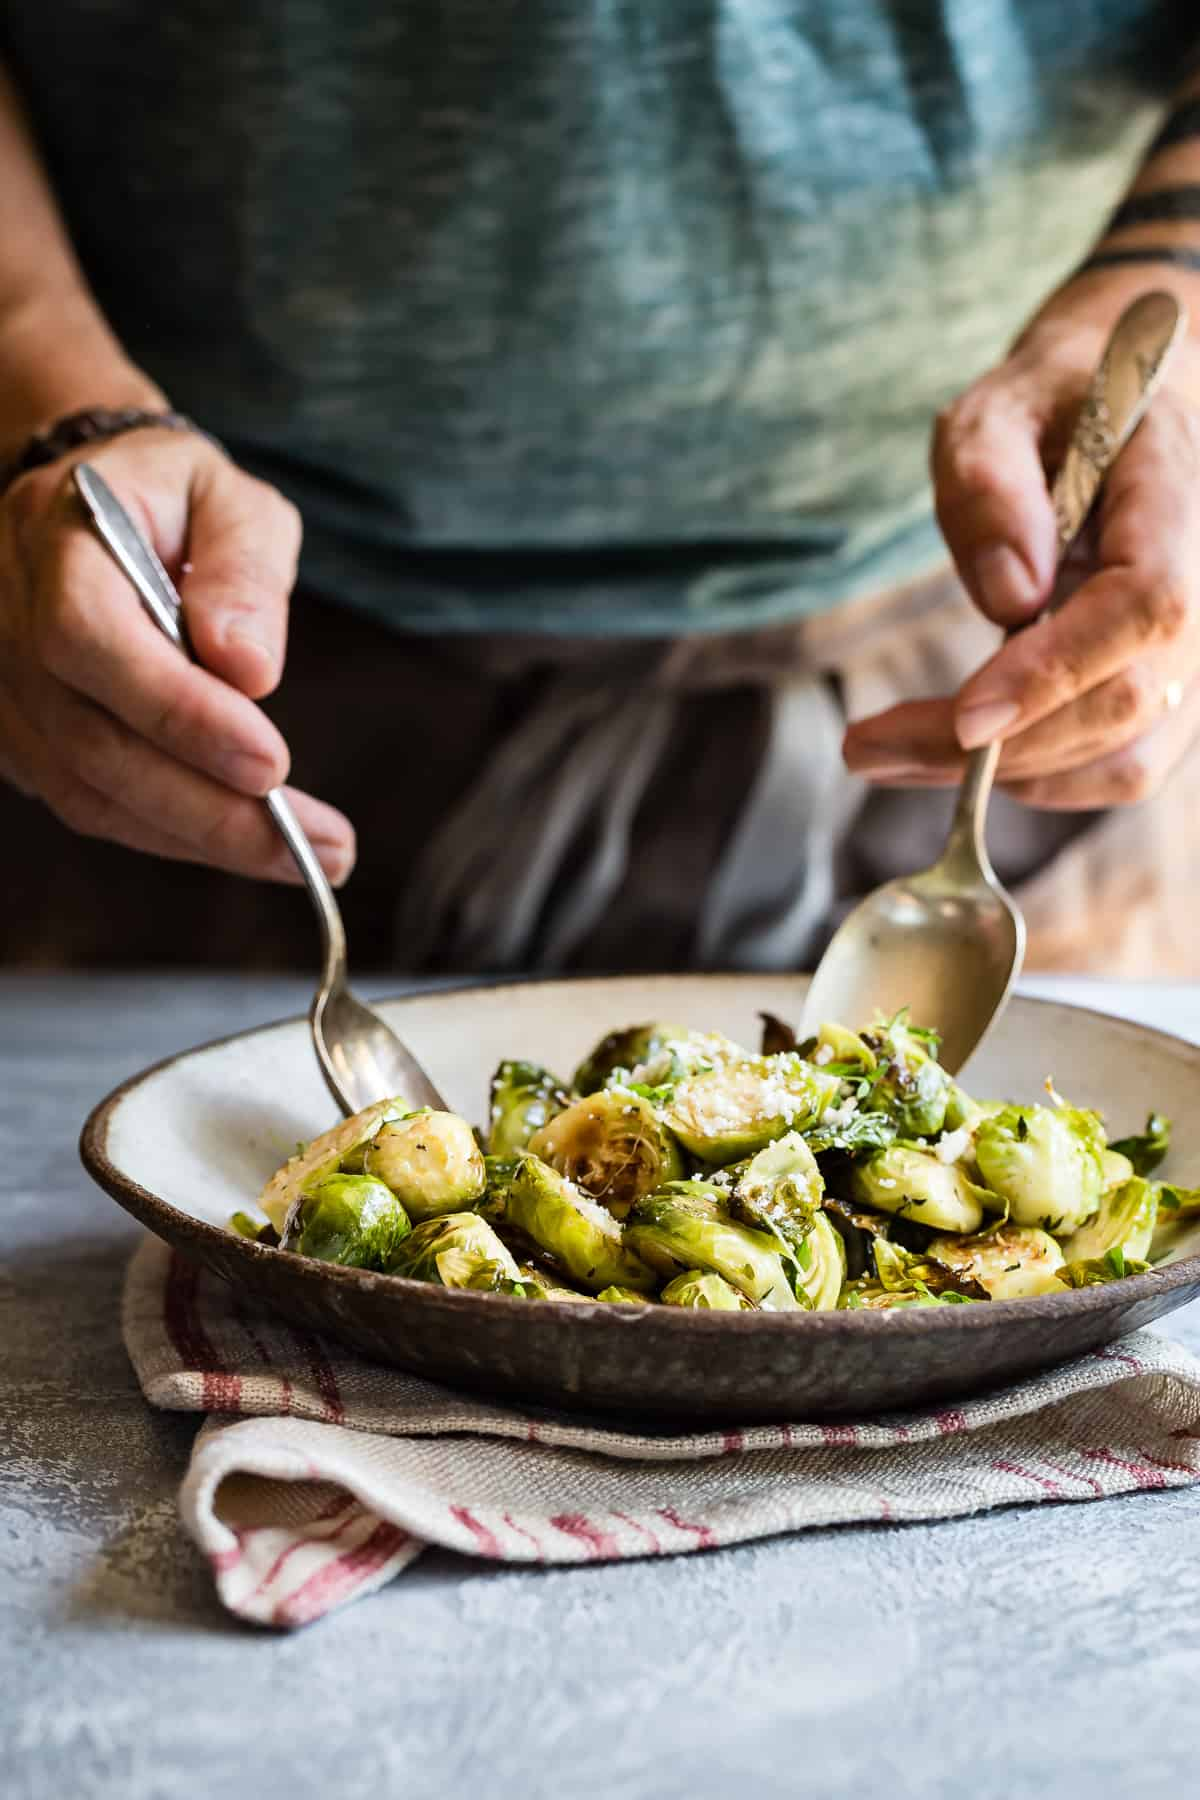 Tossing roasted brussels sprouts in a fresh thyme buttery spread sauce.